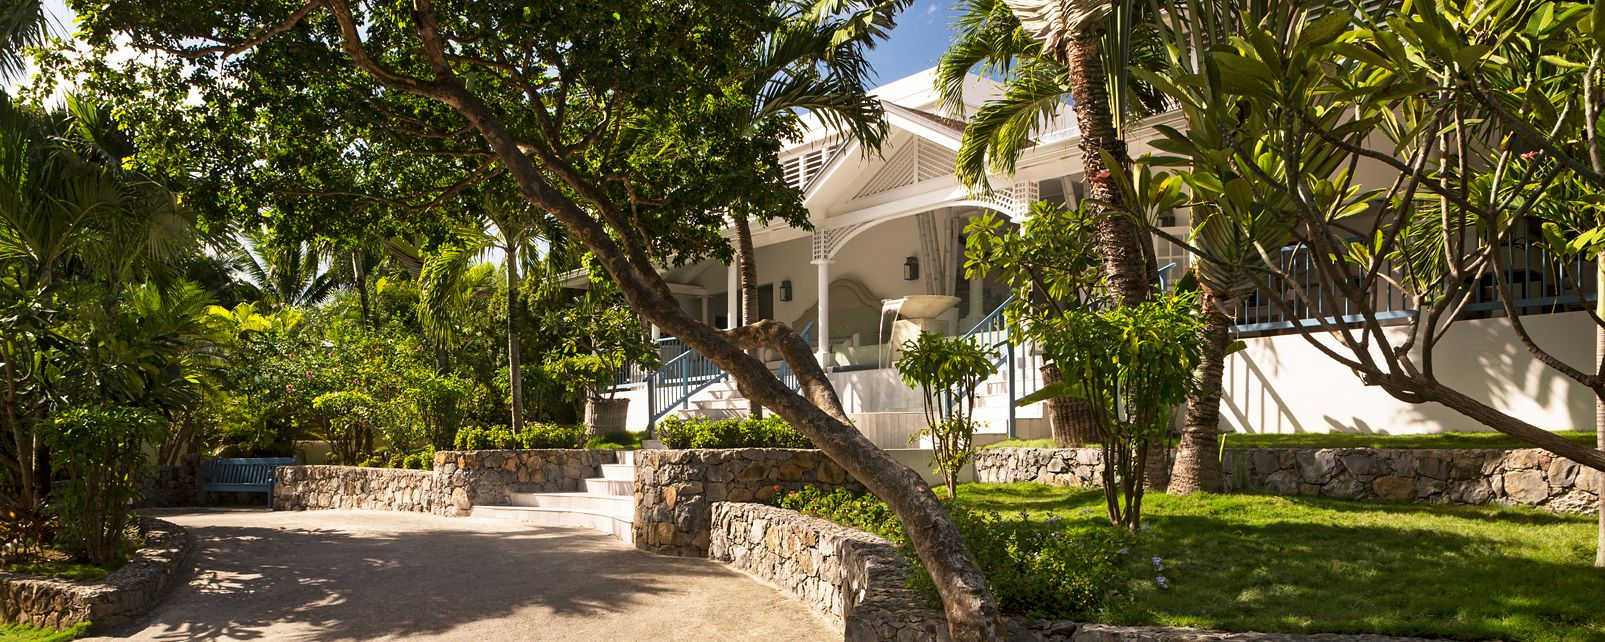 Hotel Cheval Blanc Saint-Barth Isle de France